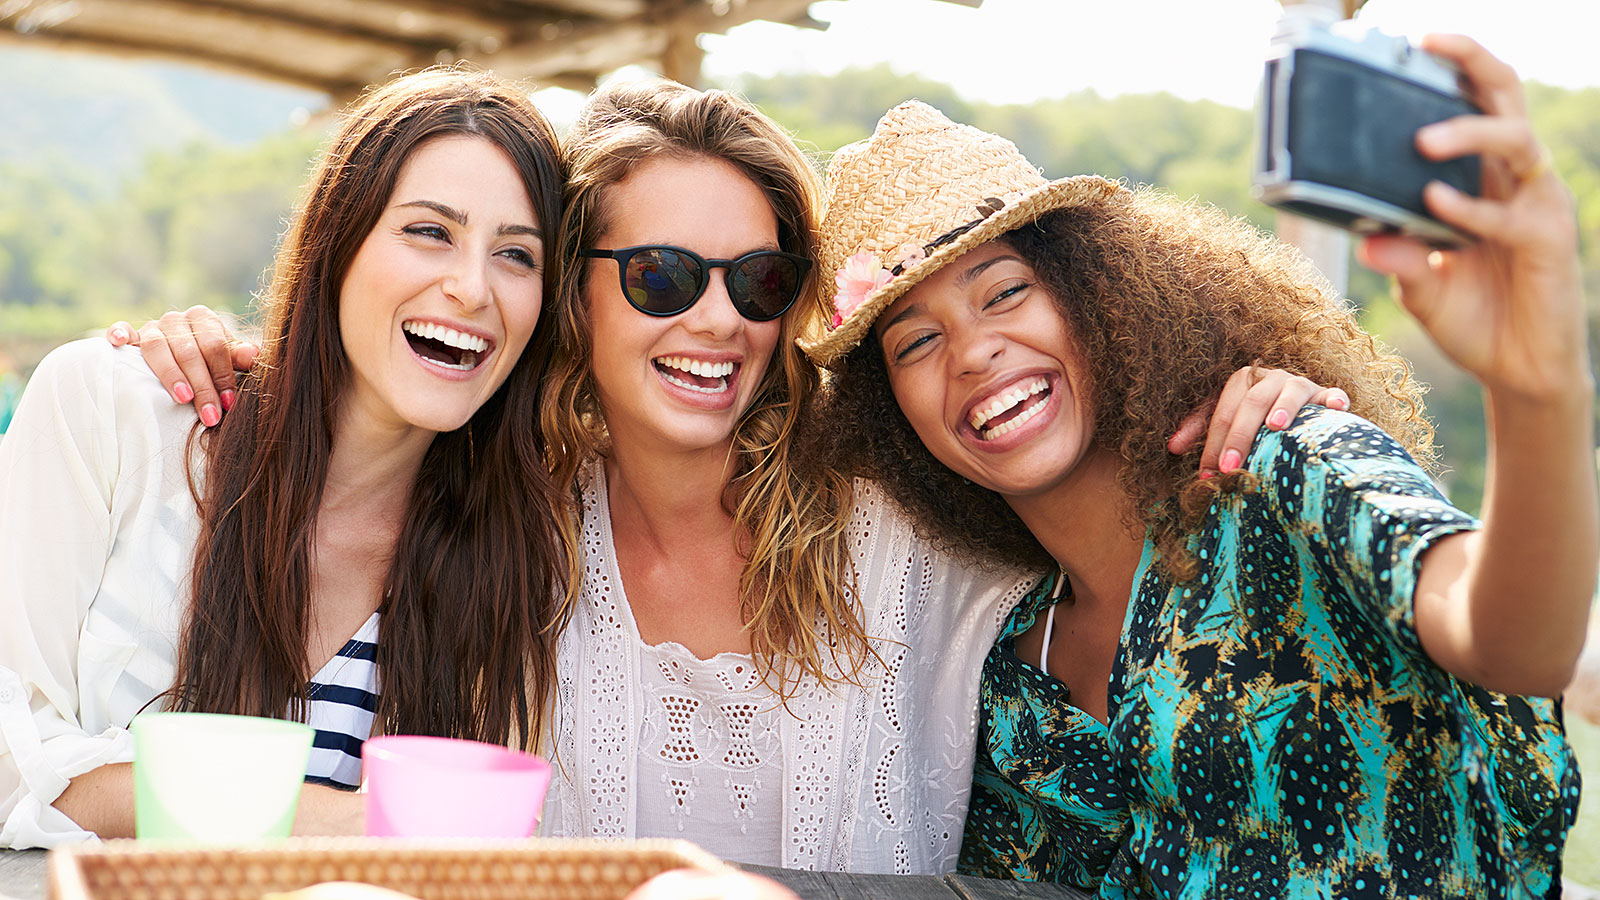 5 ways to spend time with friends that won't cause you financial stress